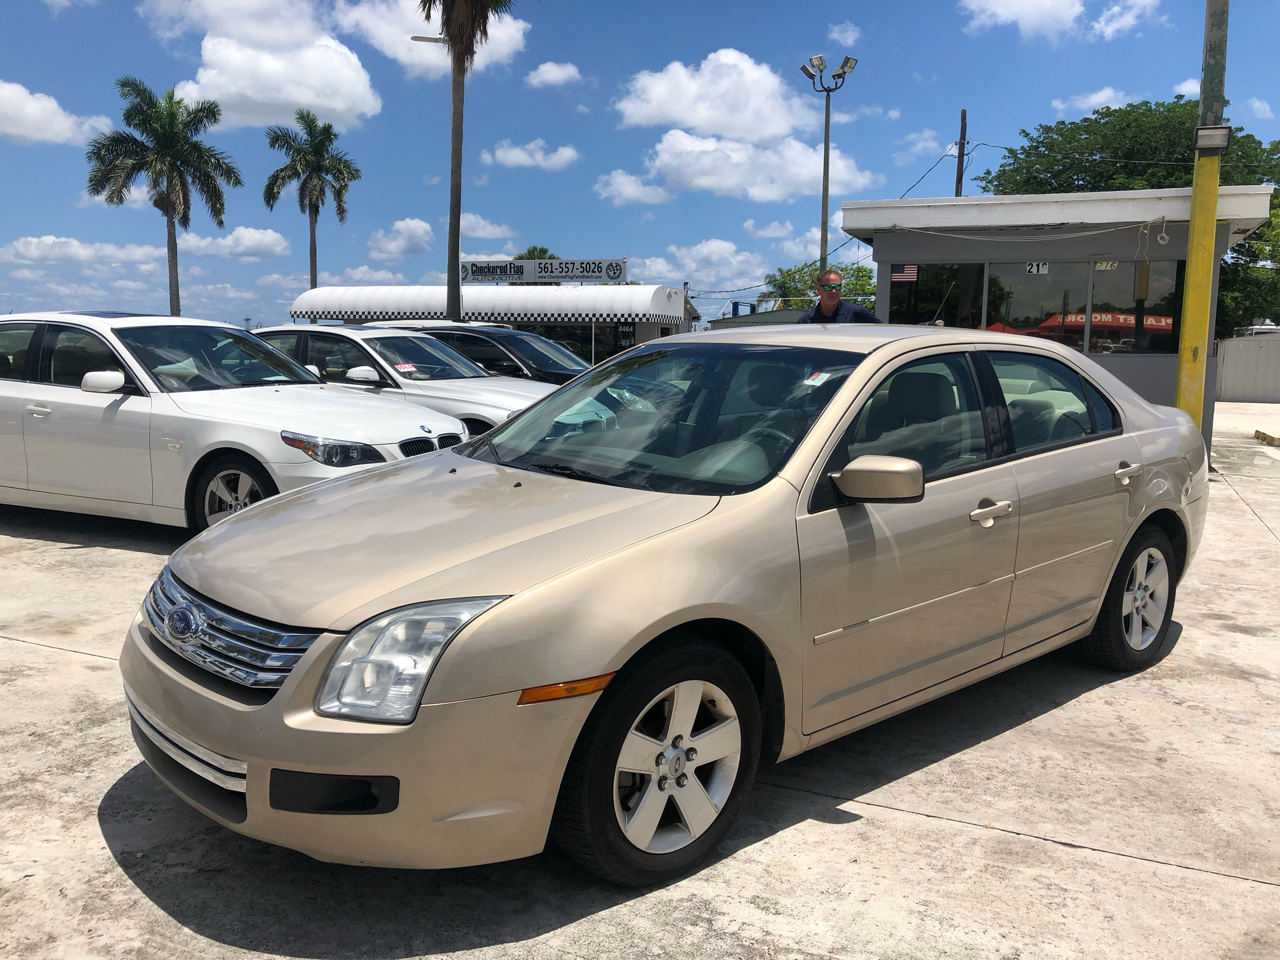 2007 Ford Fusion 4dr Sdn V6 SE FWD